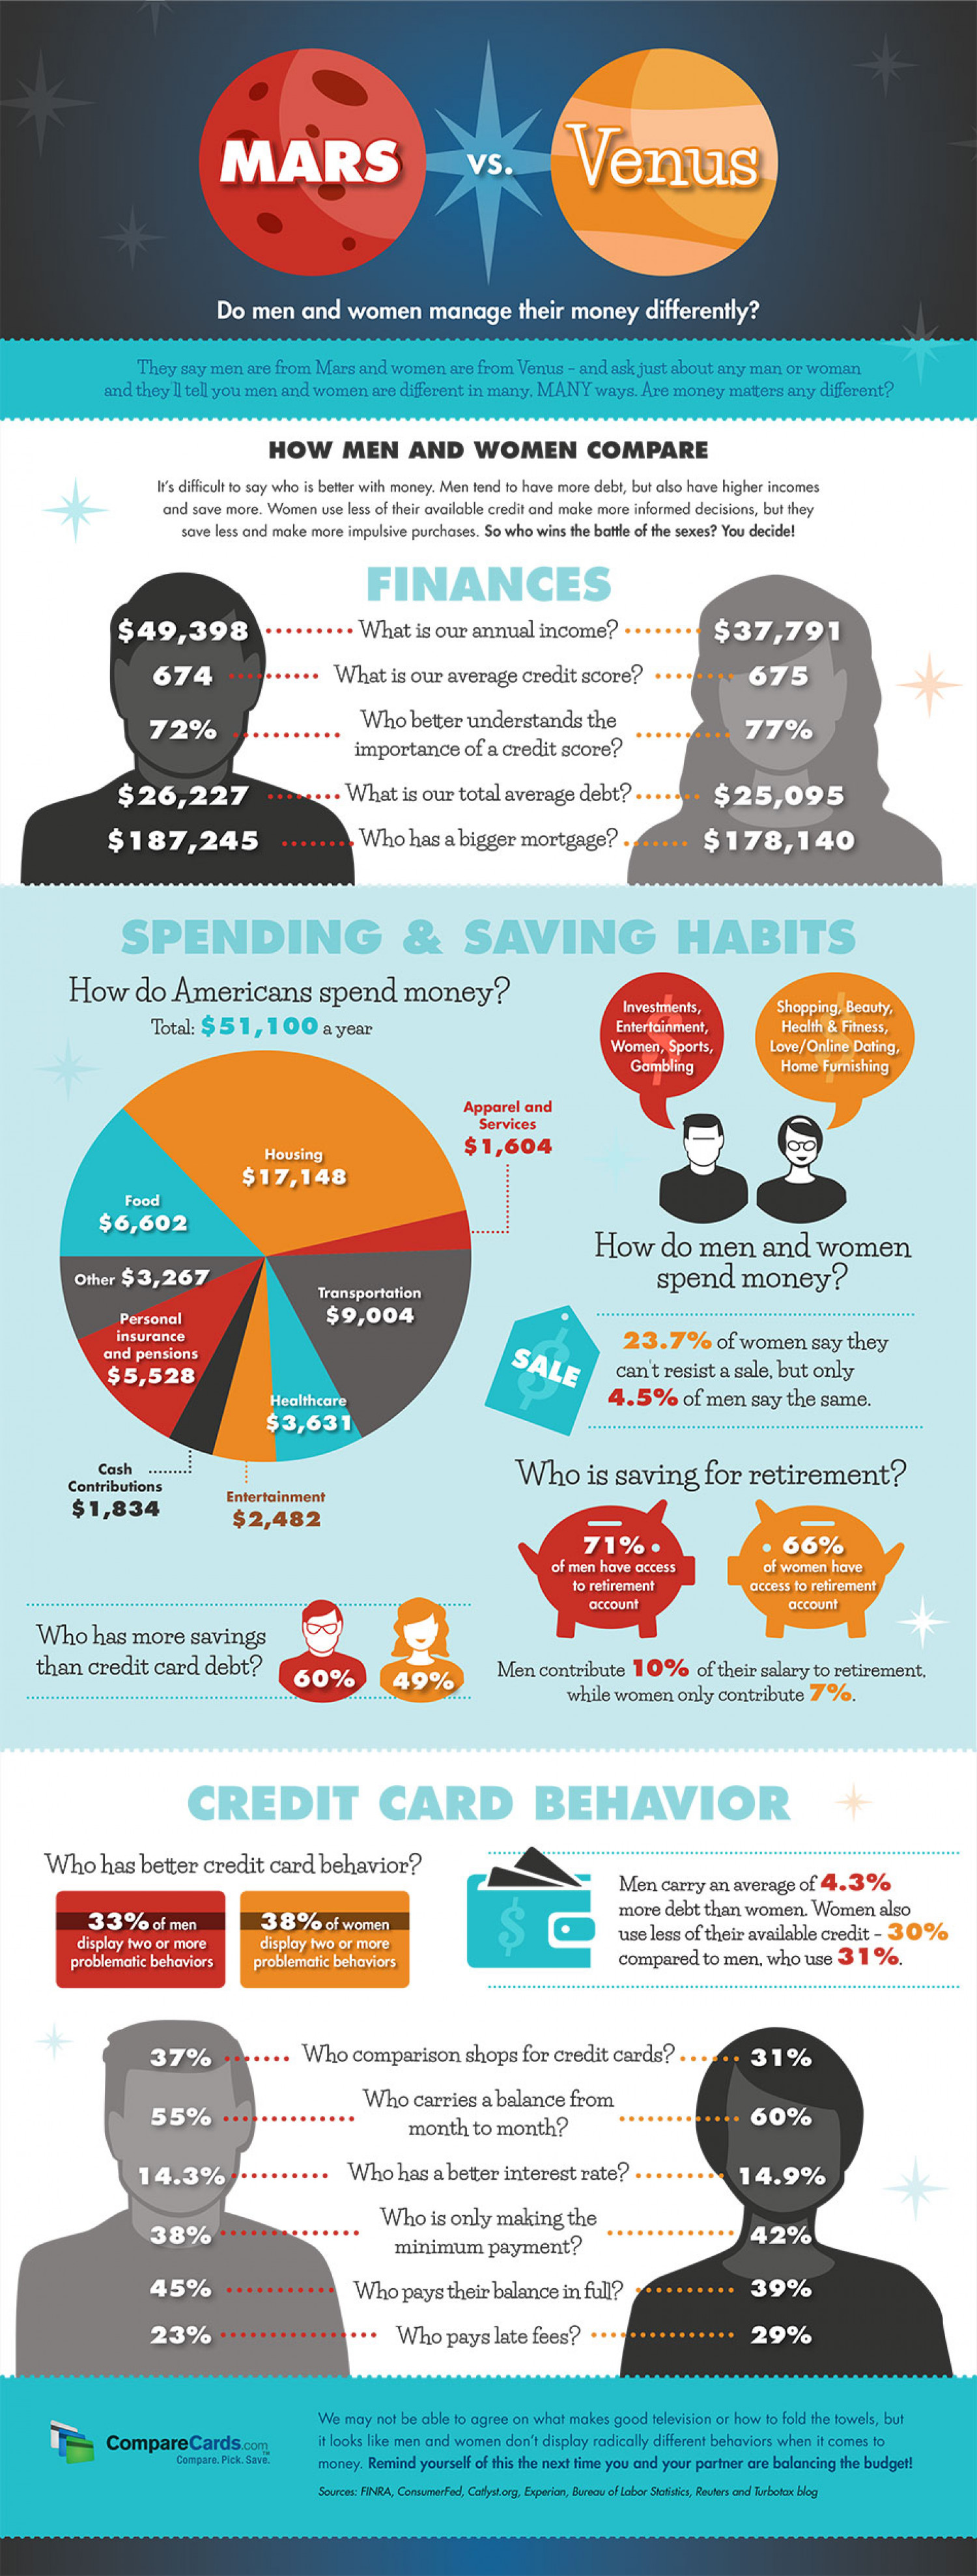 Do Men and Women Manage Money Differently? Infographic